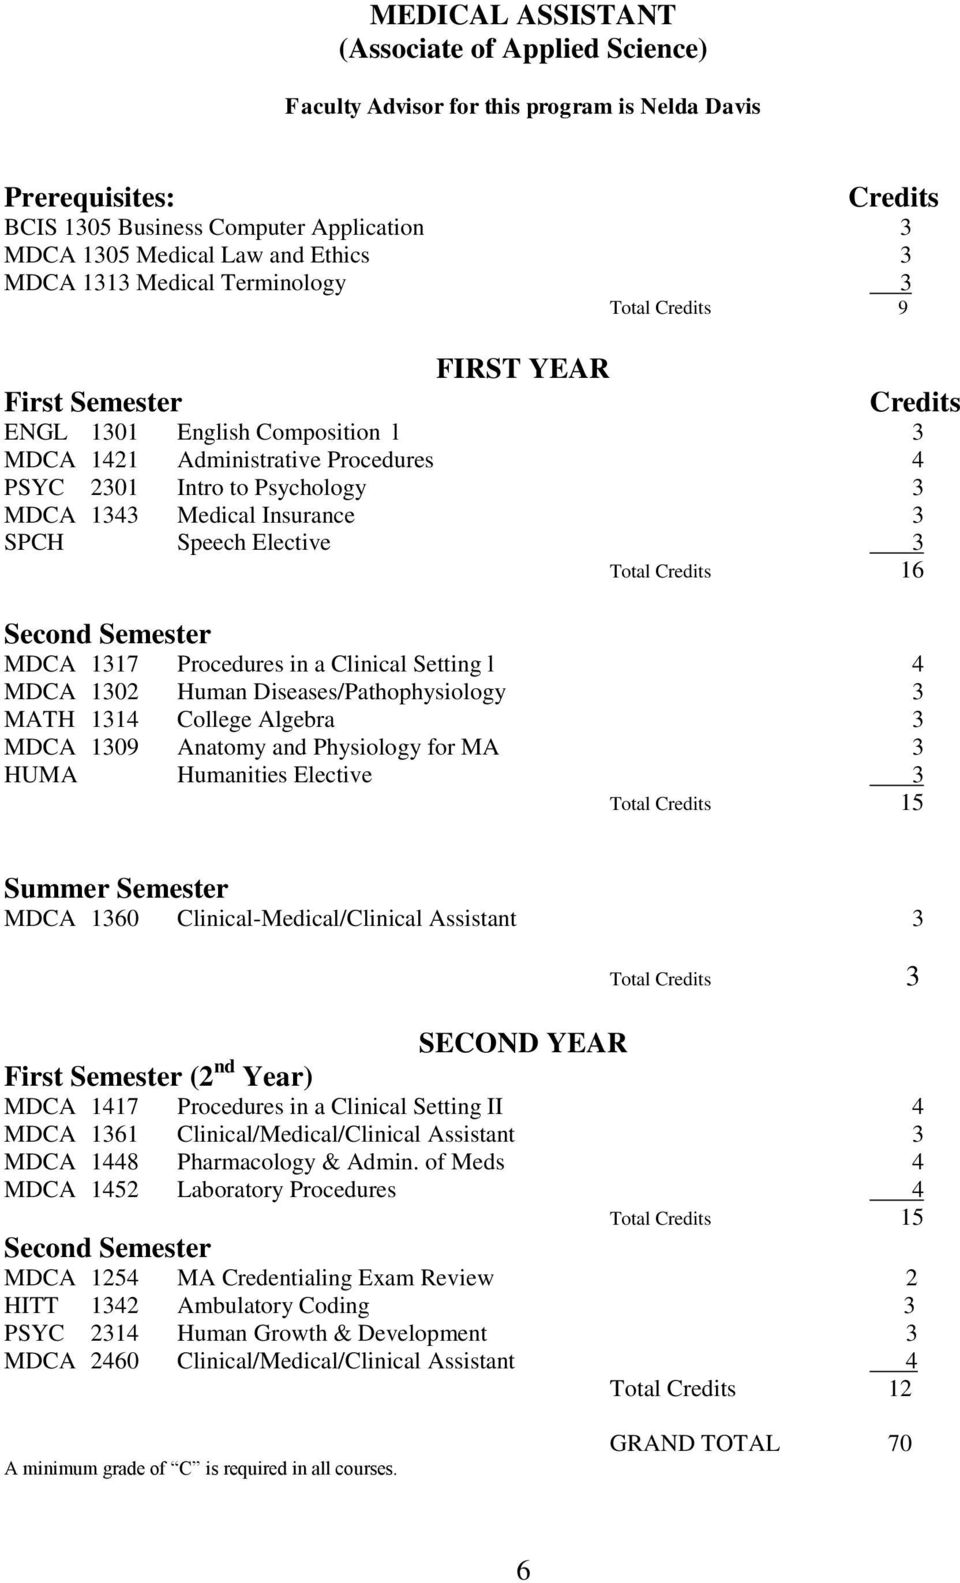 Medical Insurance 3 SPCH Speech Elective 3 Total Credits 16 Second Semester MDCA 1317 Procedures in a Clinical Setting l 4 MDCA 1302 Human Diseases/Pathophysiology 3 MATH 1314 College Algebra 3 MDCA